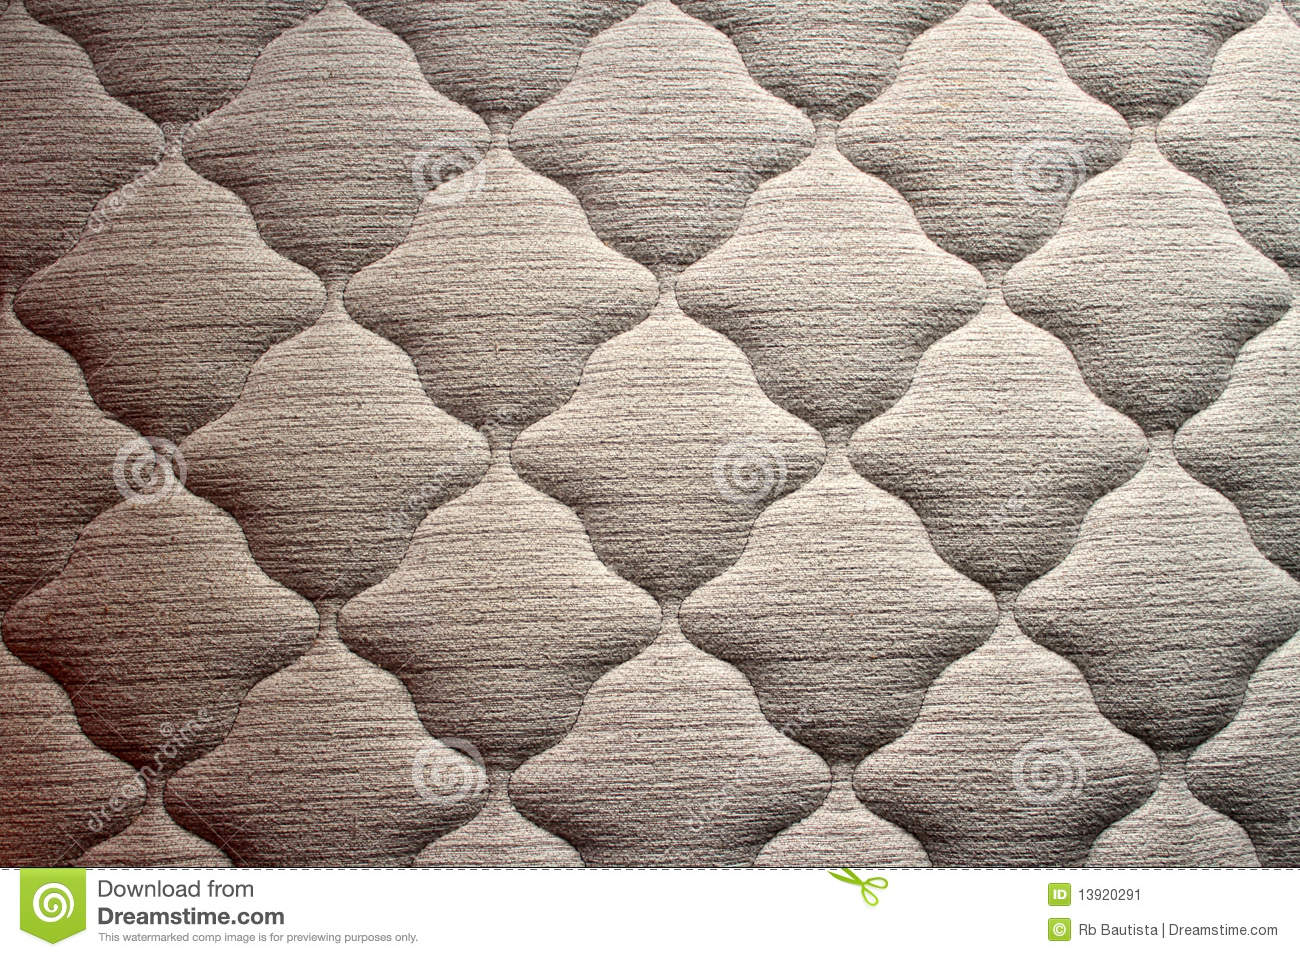 Bed sheets texture seamless - Red Bed Sheet Texture Luxury Bed Sheet Texture Luxury Bed Sheet Texture